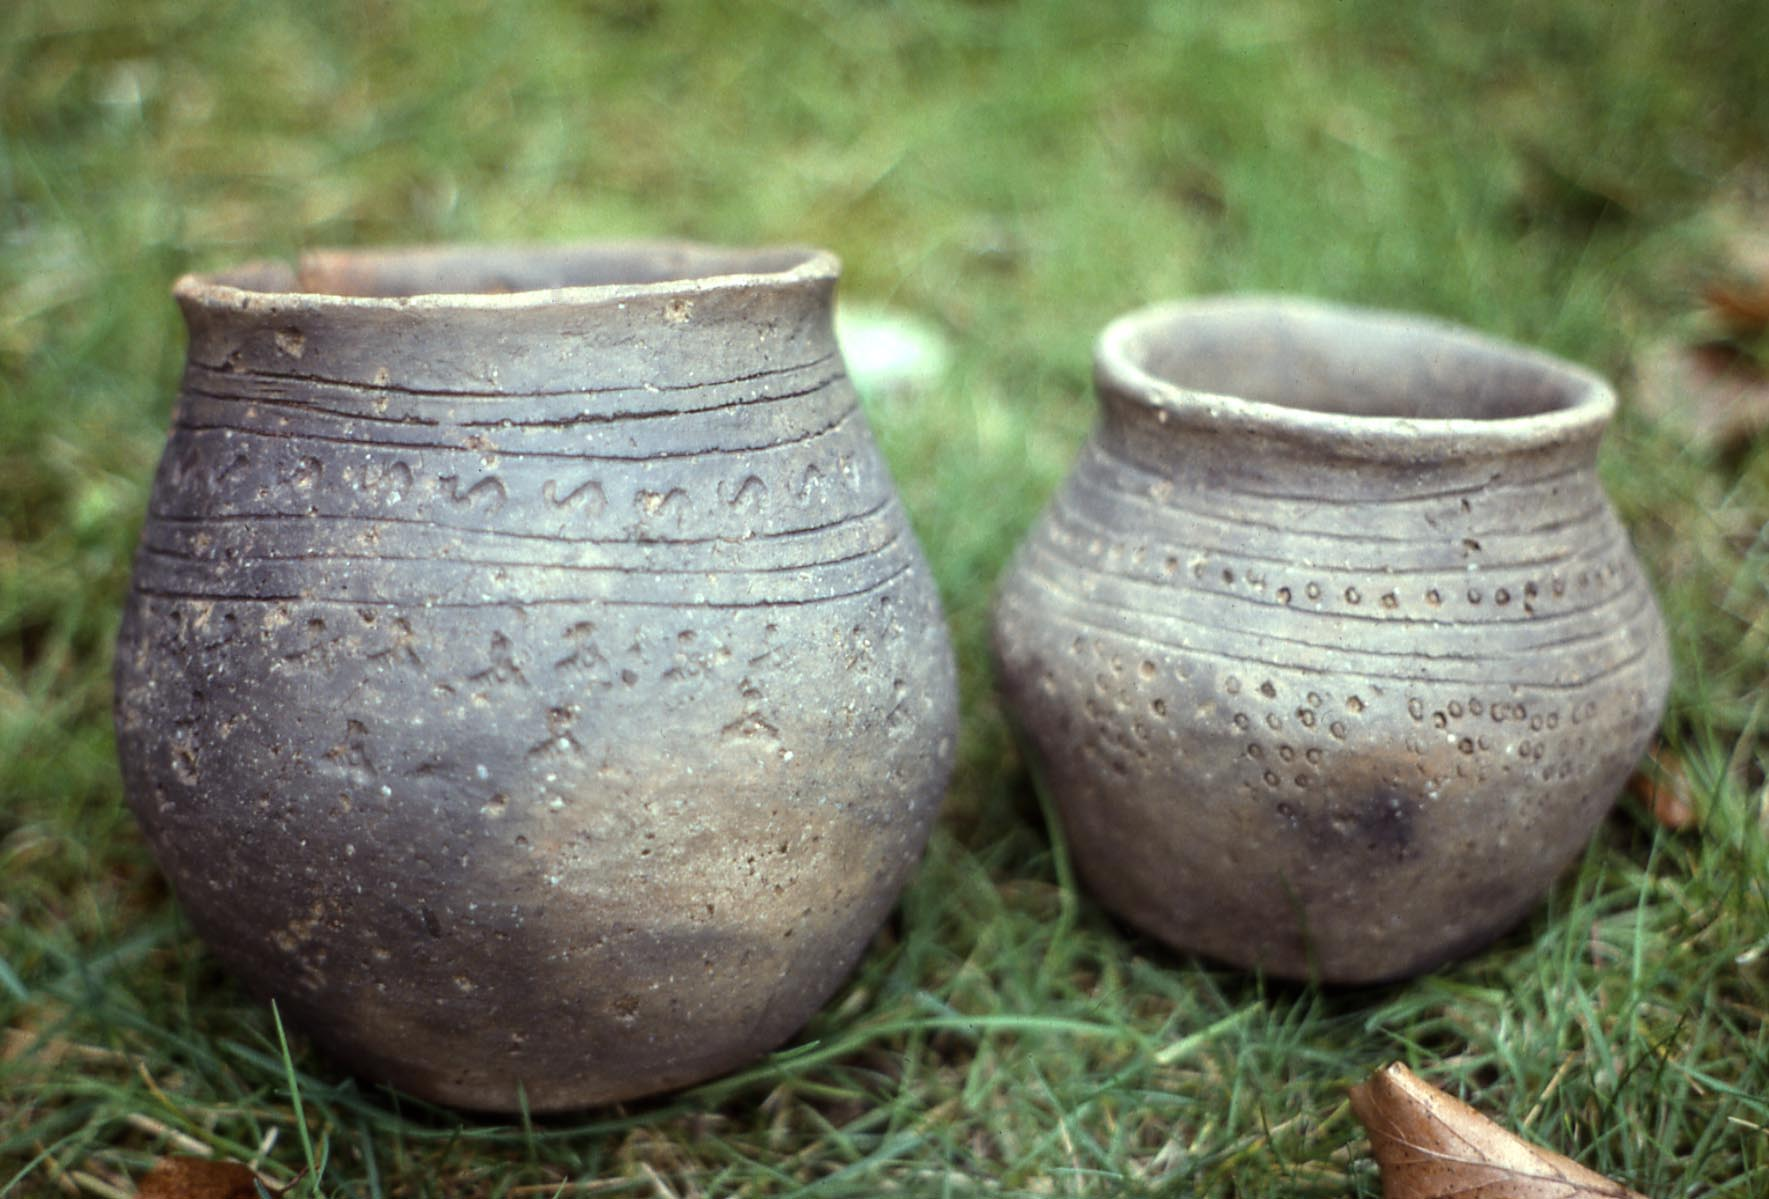 Anglo-Saxon pottery from RAF Lakenheath, Suffolk